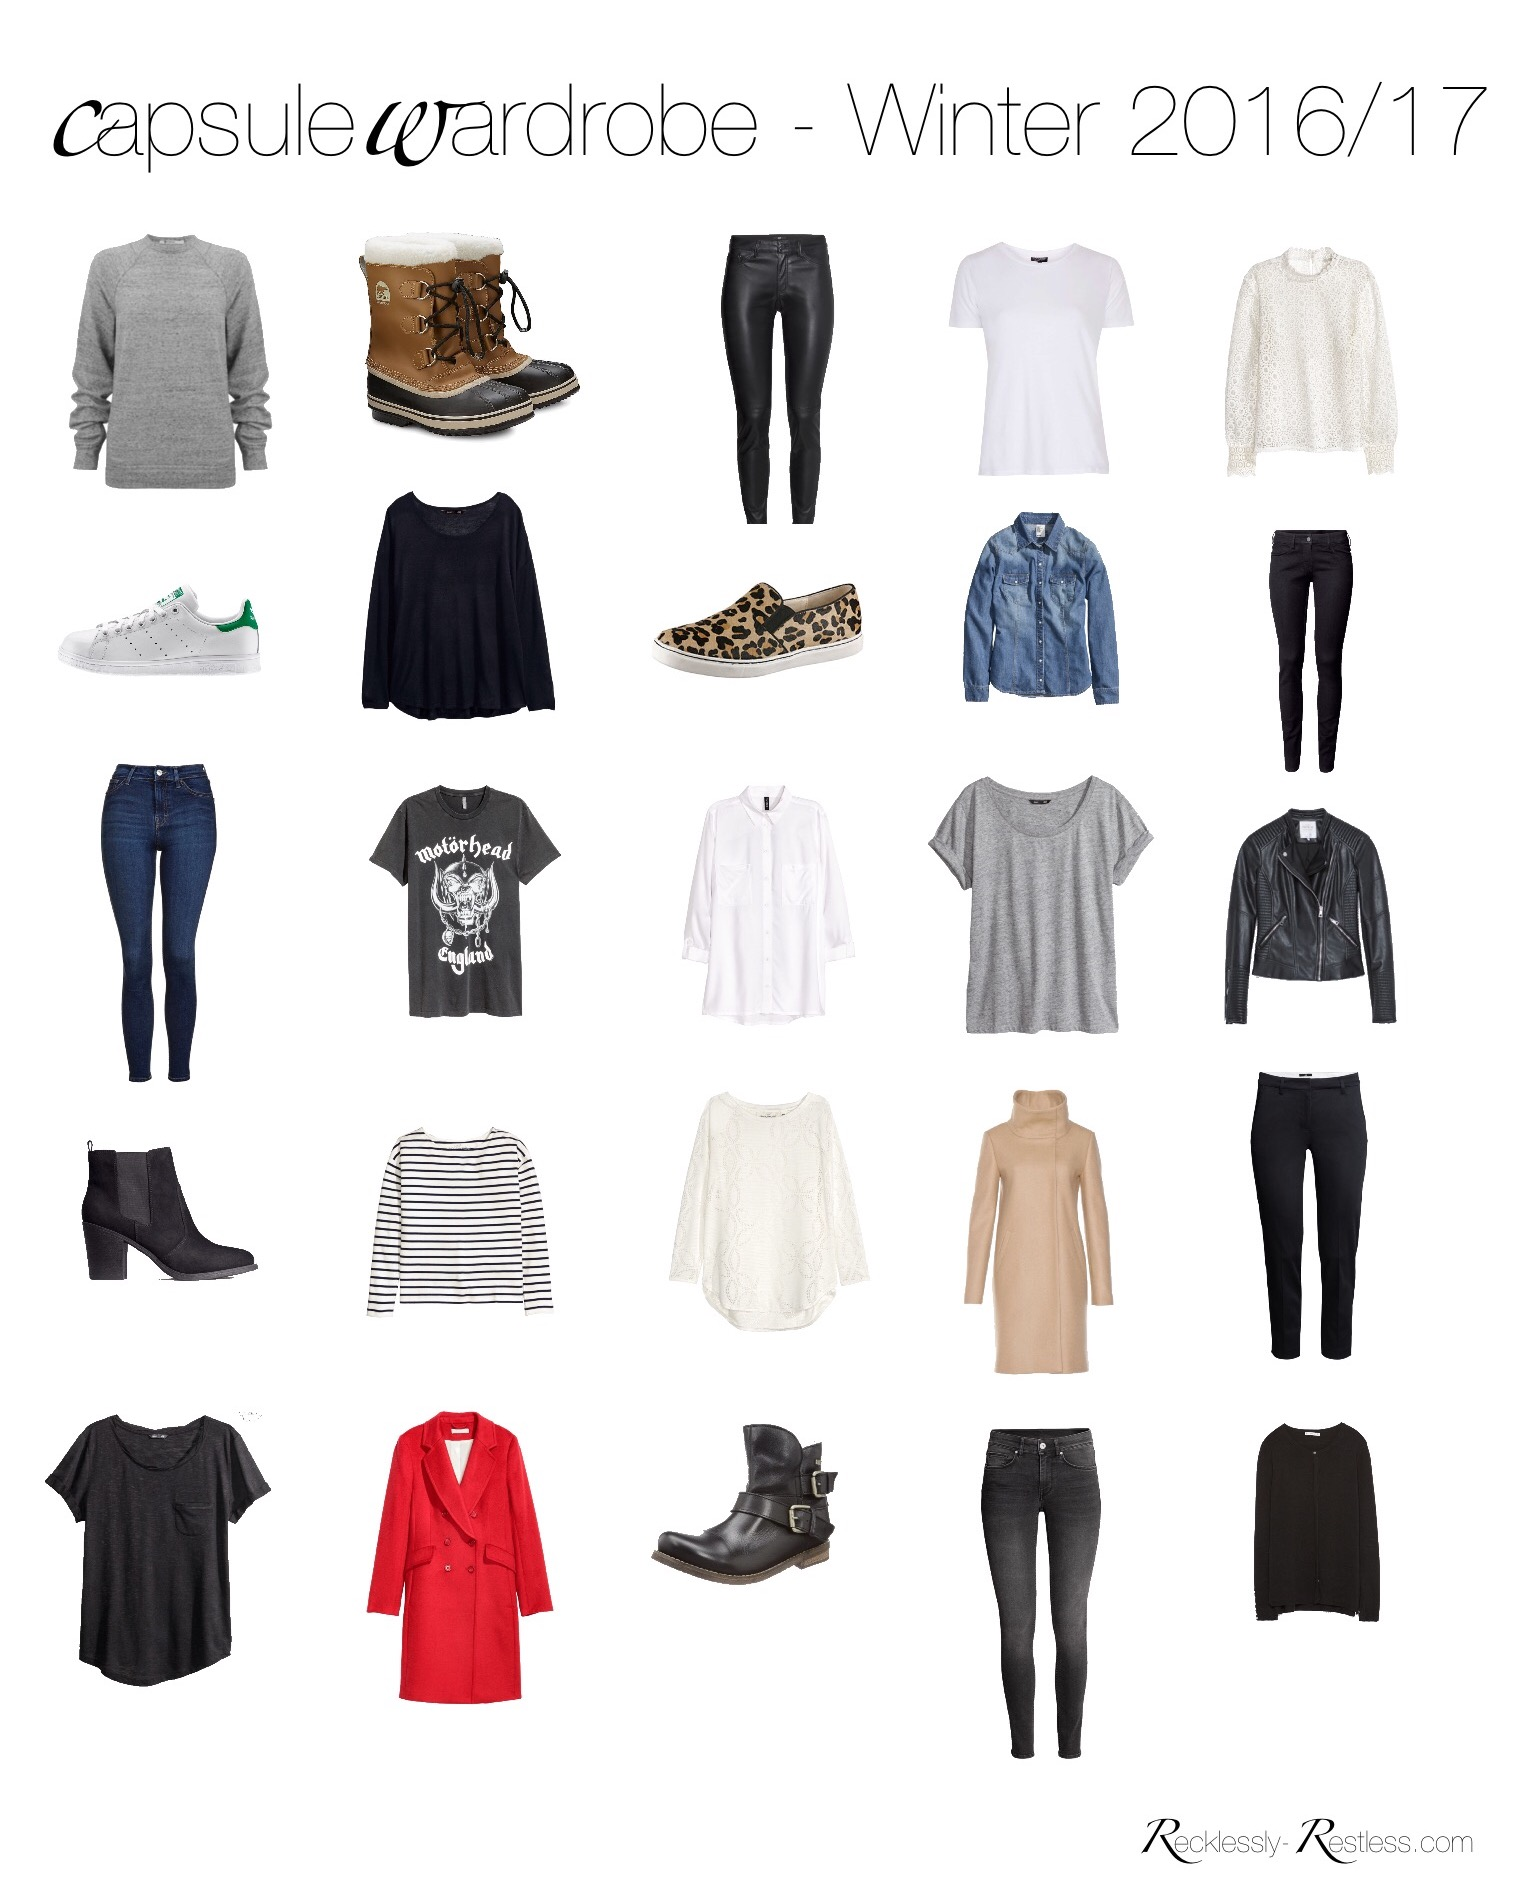 capsule-wardrobe-winter-2016-2017-capsule-wardrobe-deitsch